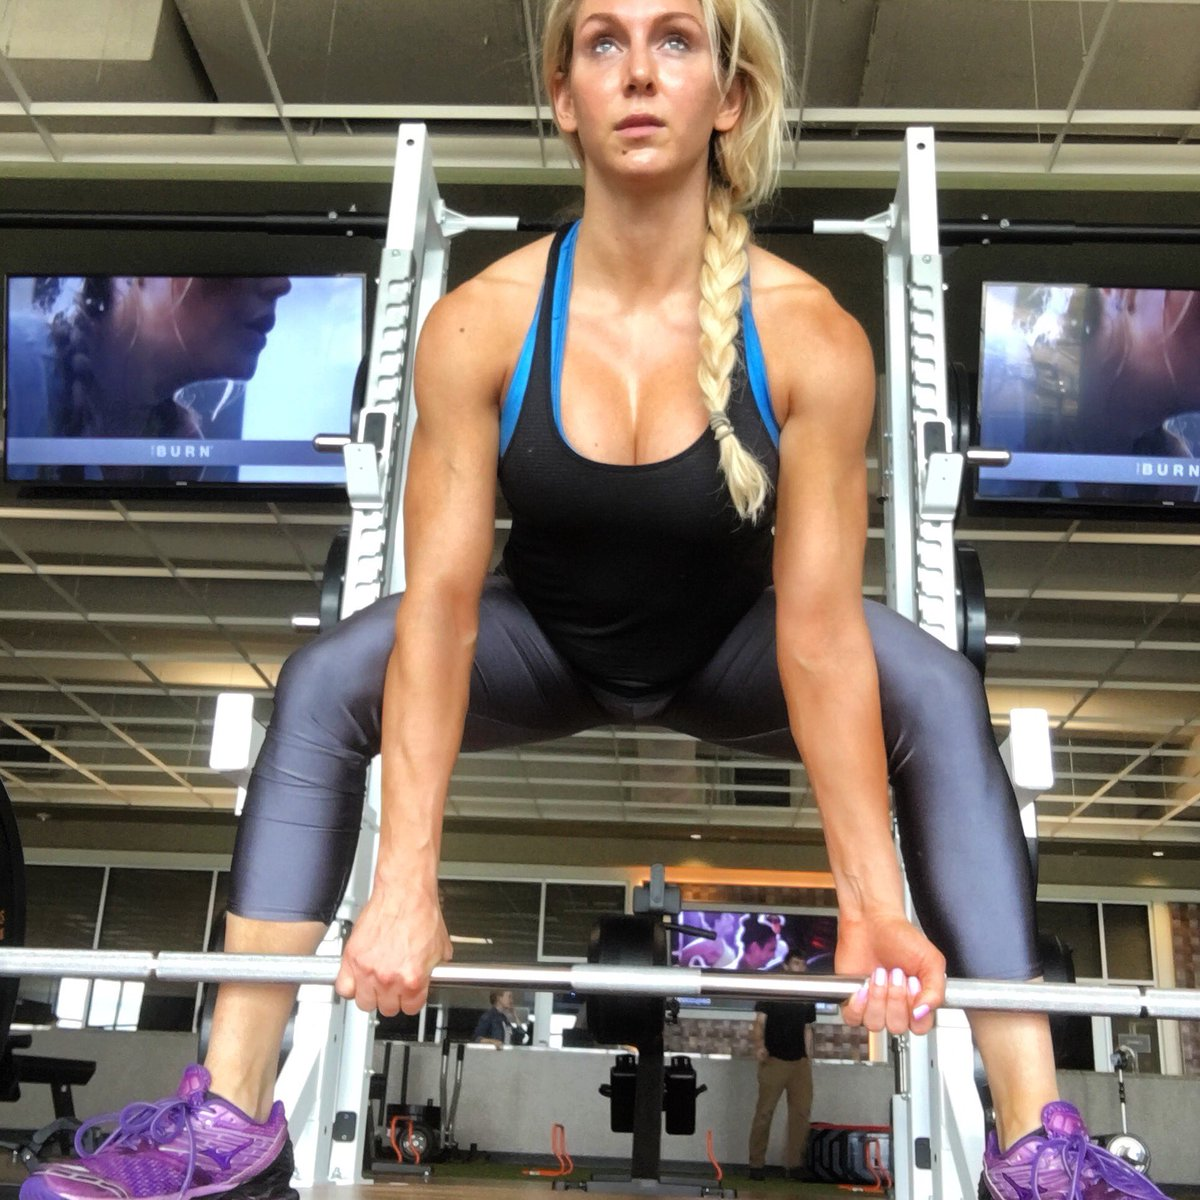 I don't just talk the talk. @MogyApp 🏋️‍♀️ @HardNocksSouth #SDLive htt...